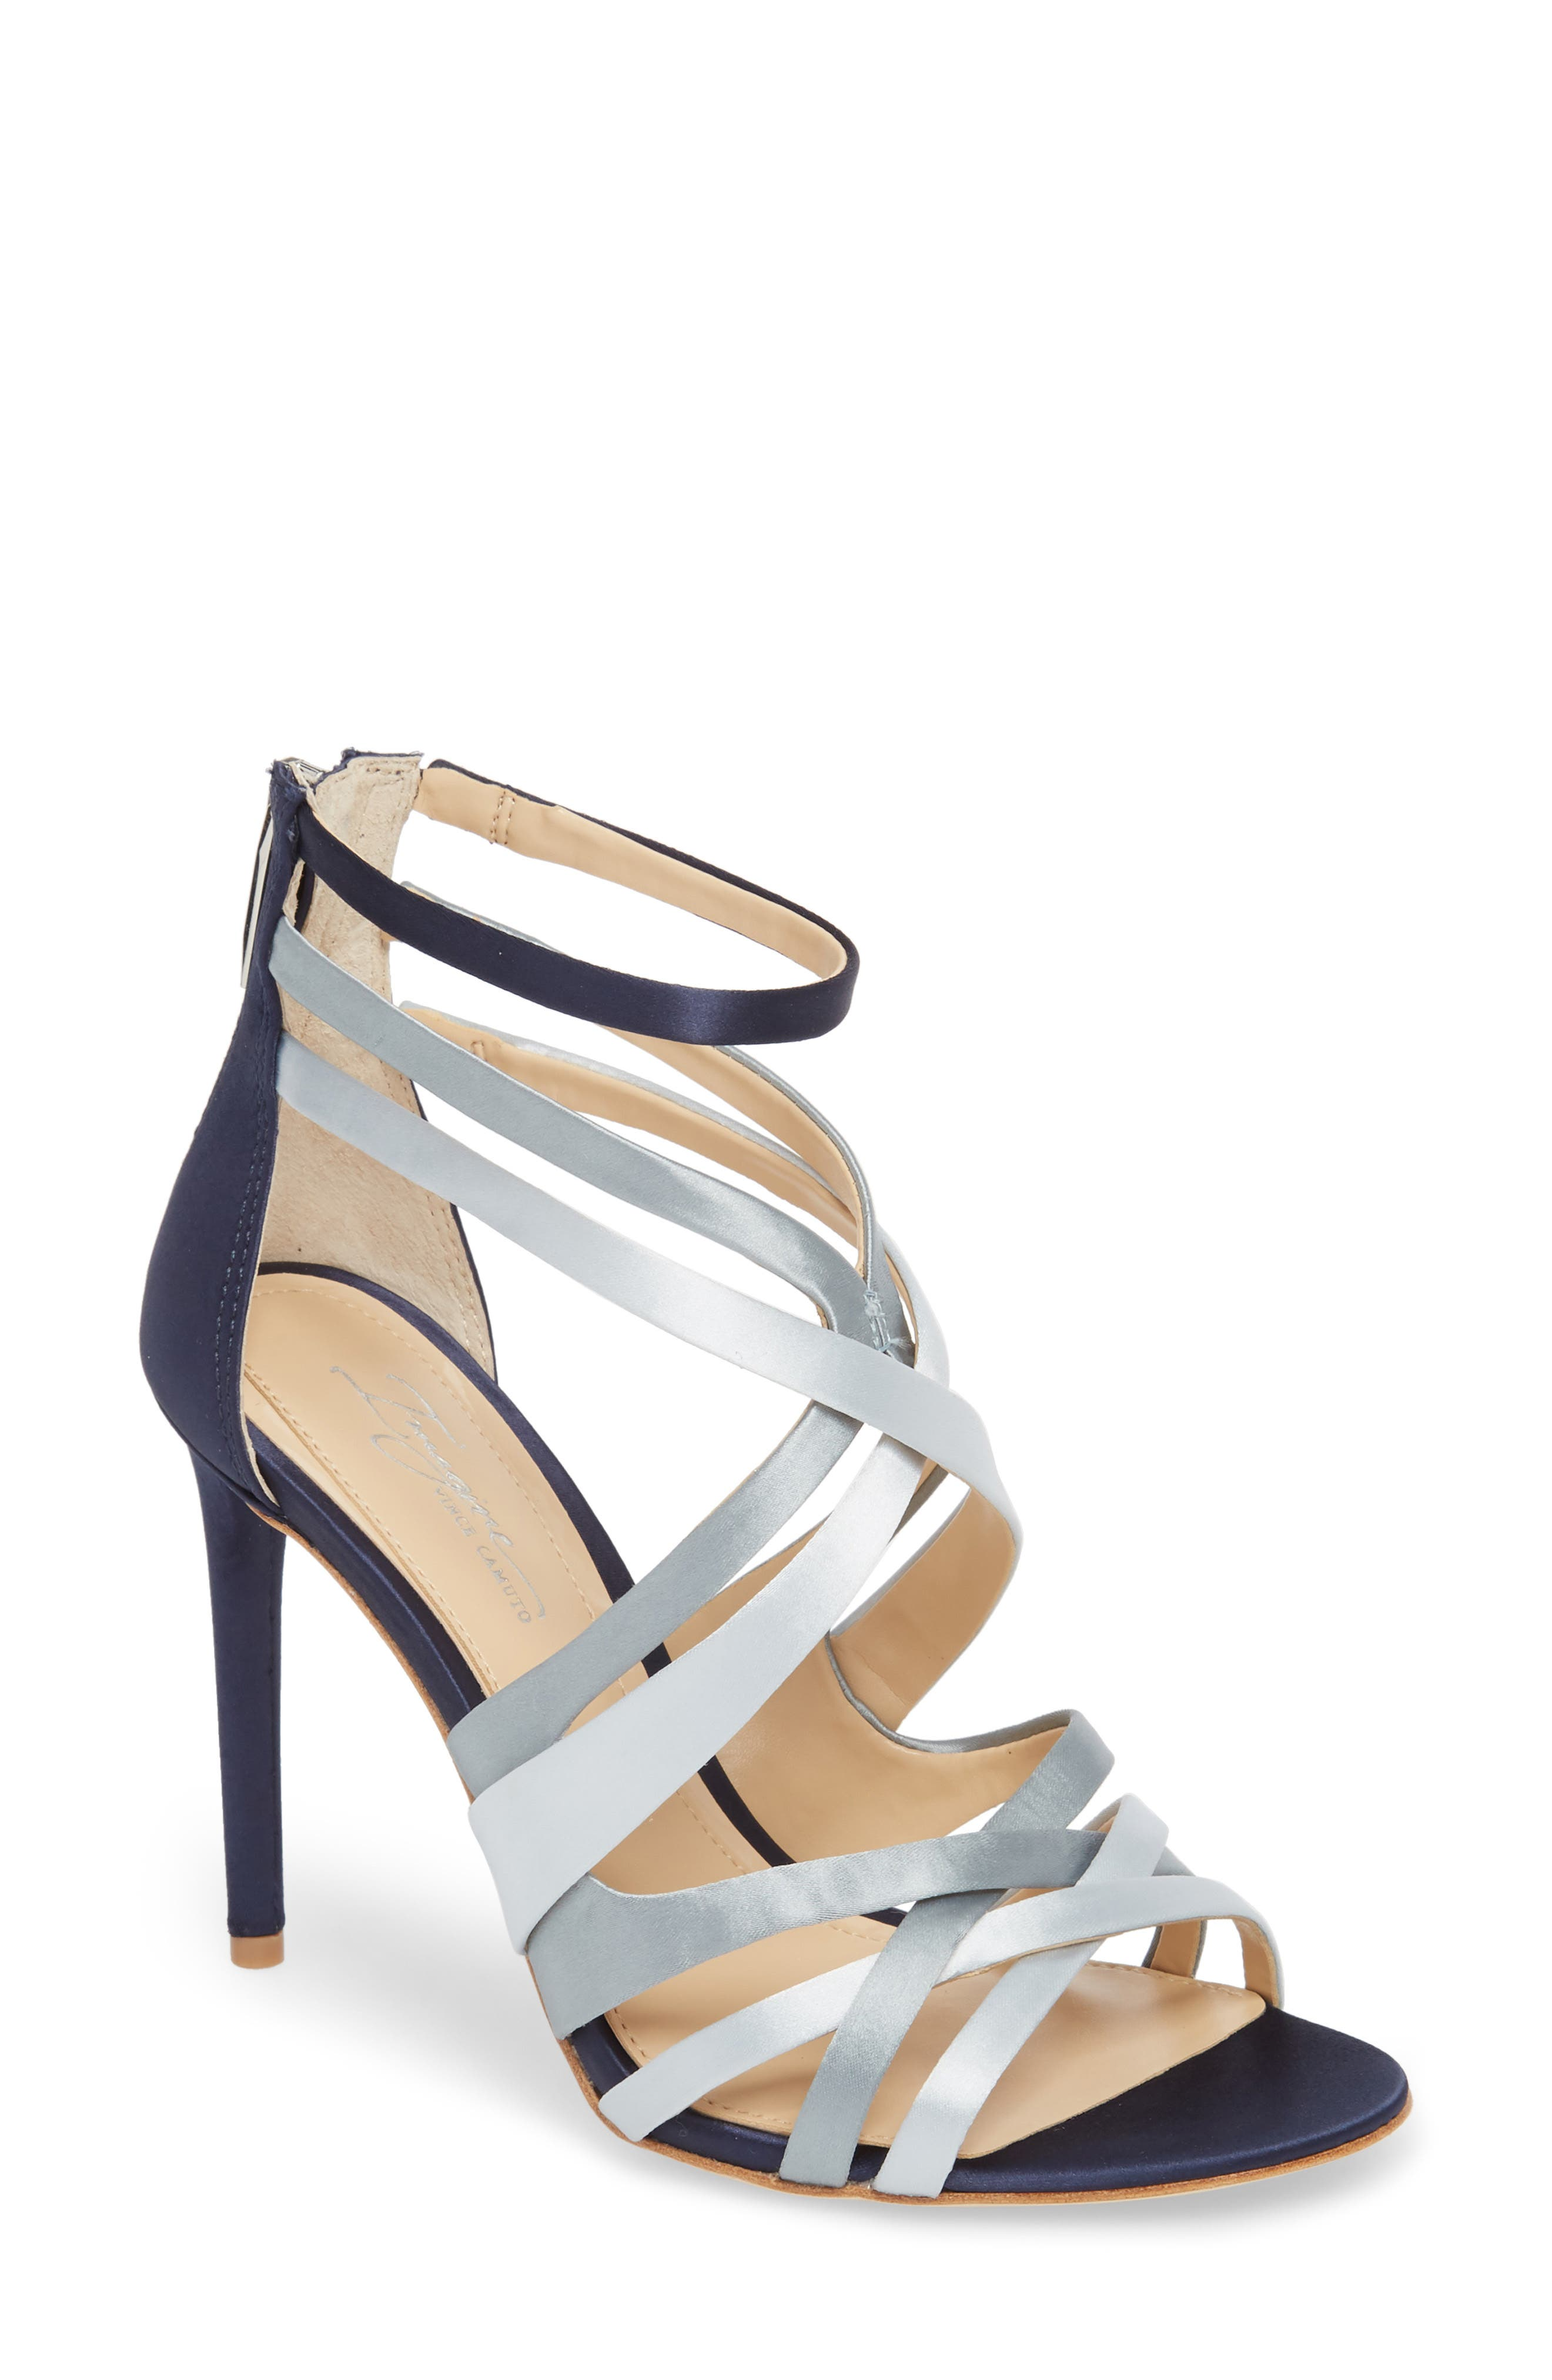 Imagine By Vince Camuto Ress Sandal, Blue